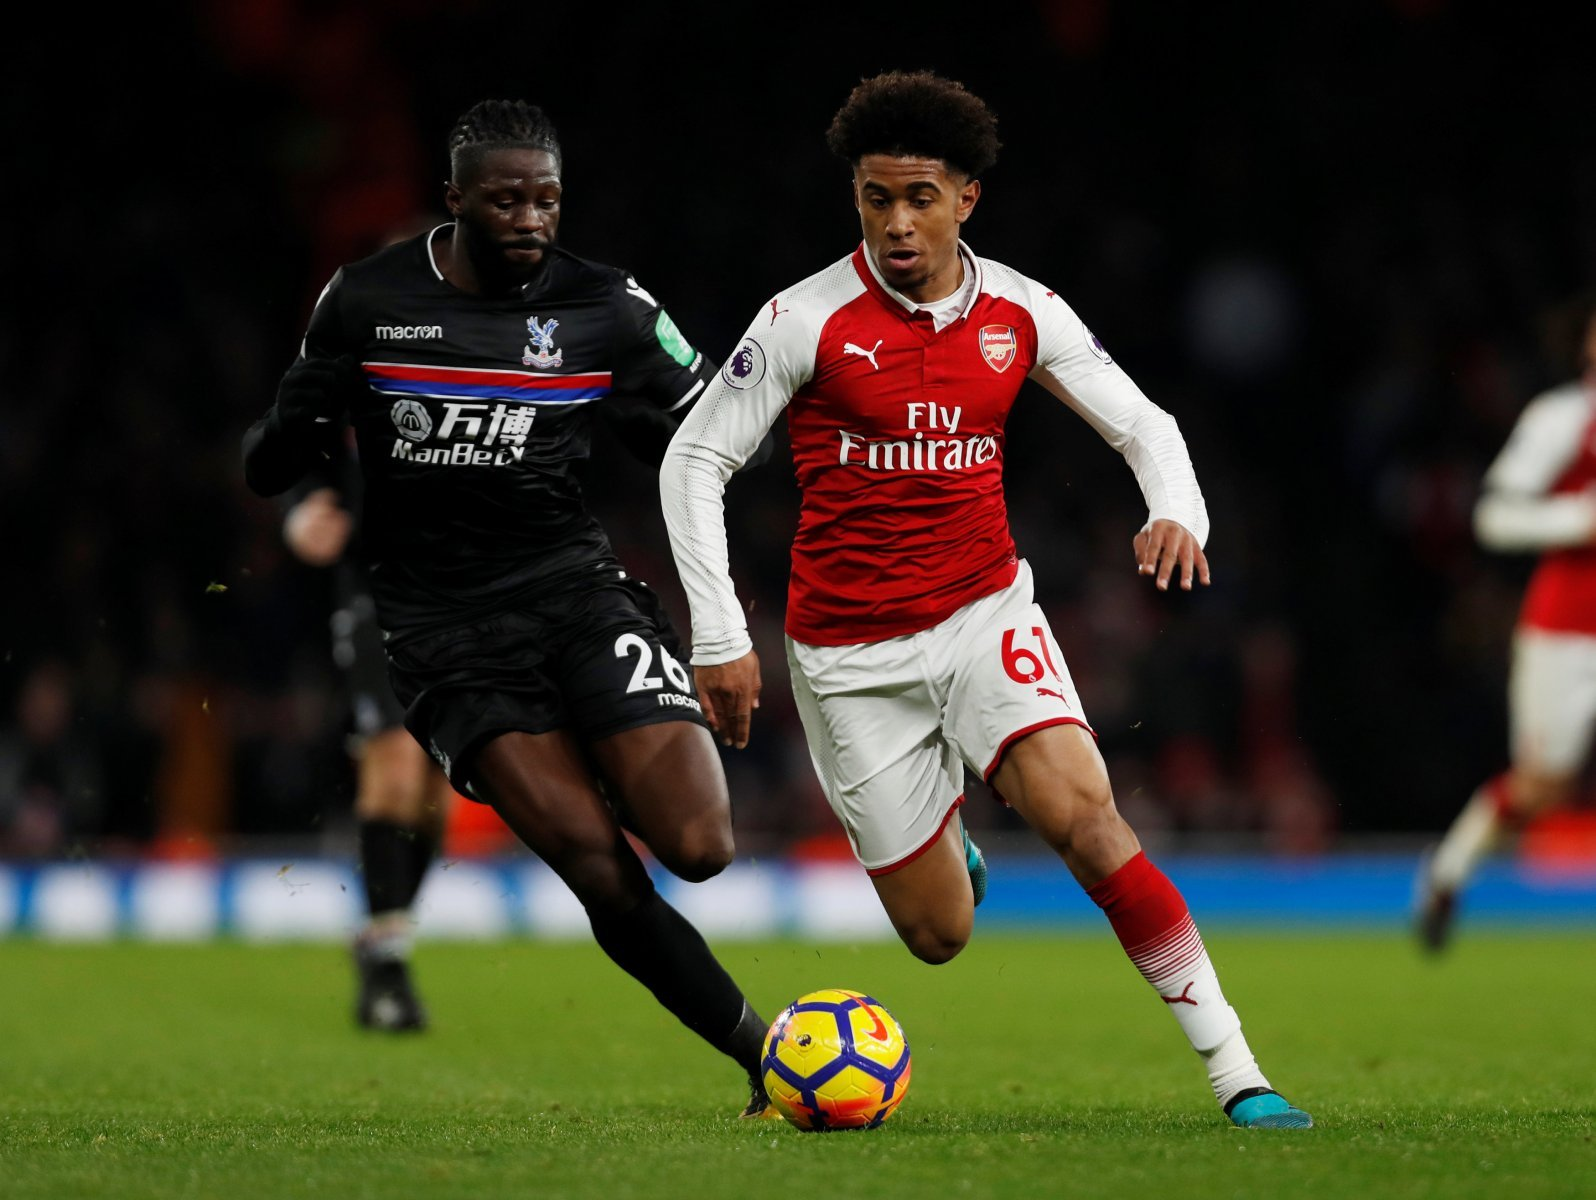 Reiss Nelson needs to play against West Ham according to Arsenal fans